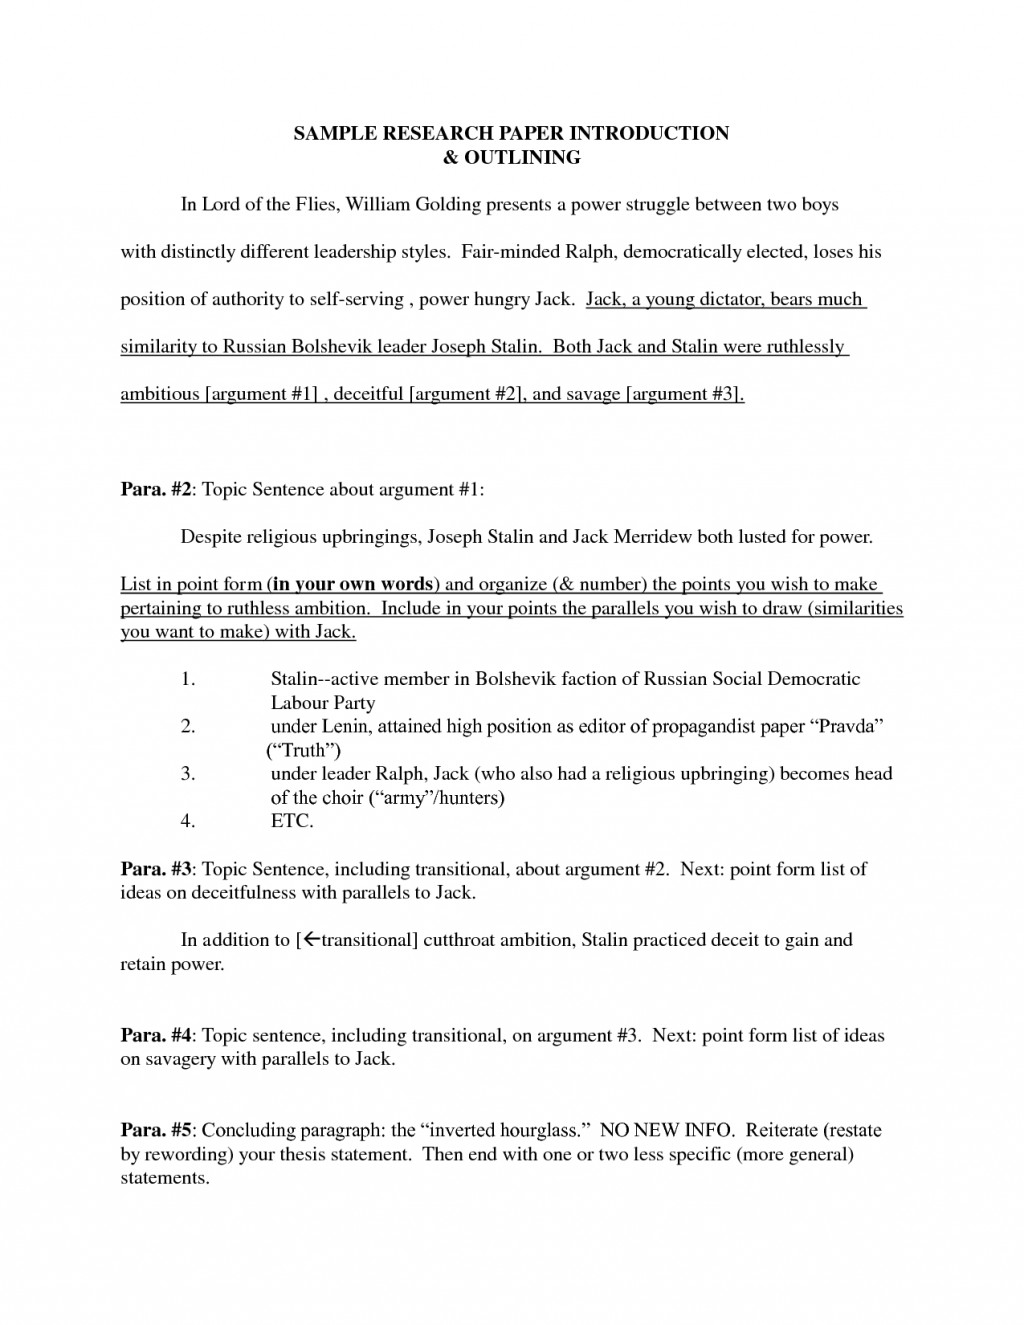 005 Writing An Introduction To Research Paper Top A Effective For How Write Powerpoint Ppt Large